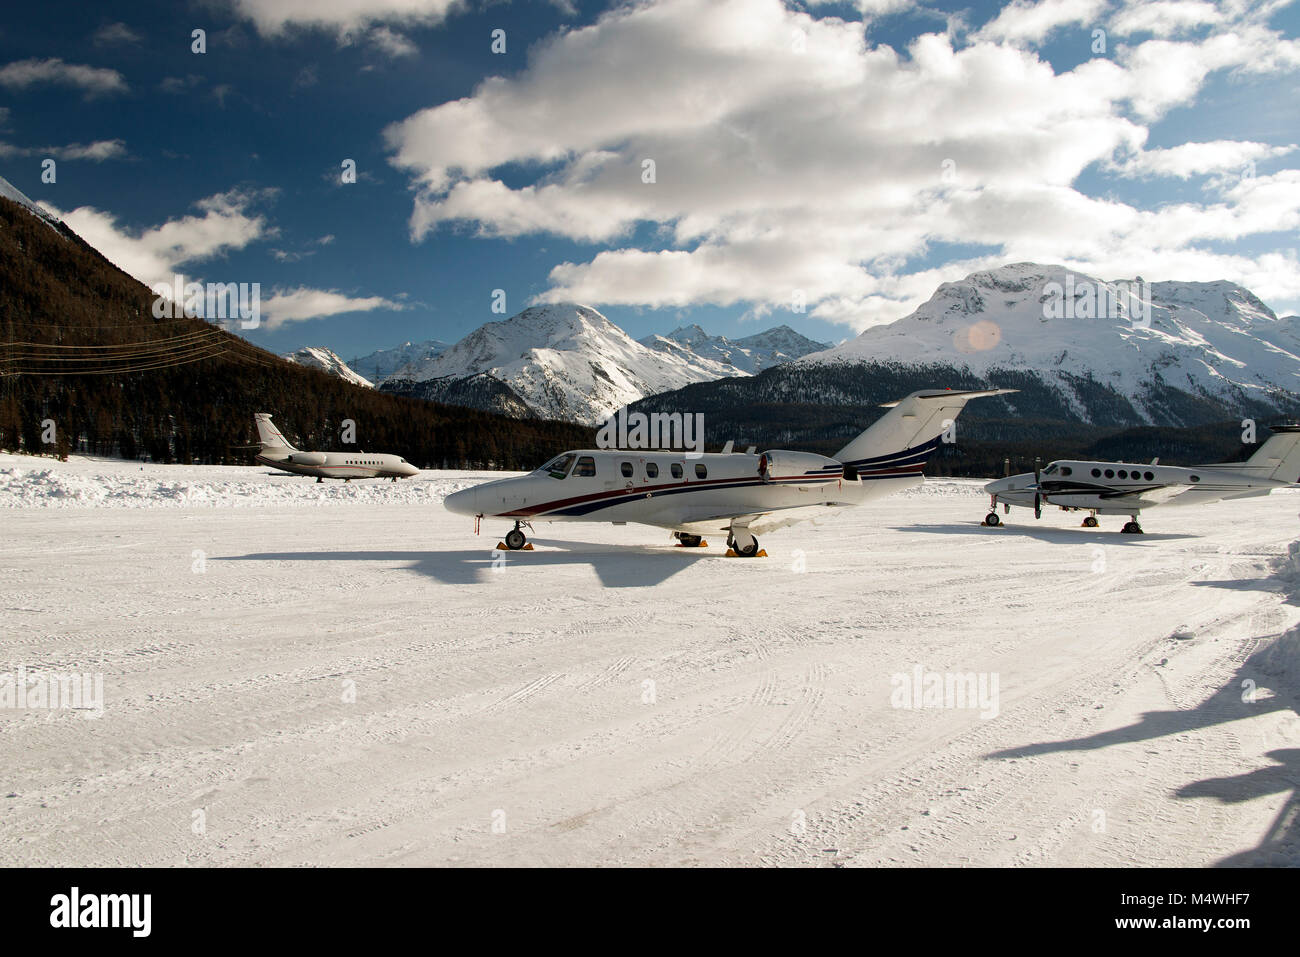 Private jets and a propeller type airplane taking off in the airport of St Moritz Switzerland in winter - Stock Image